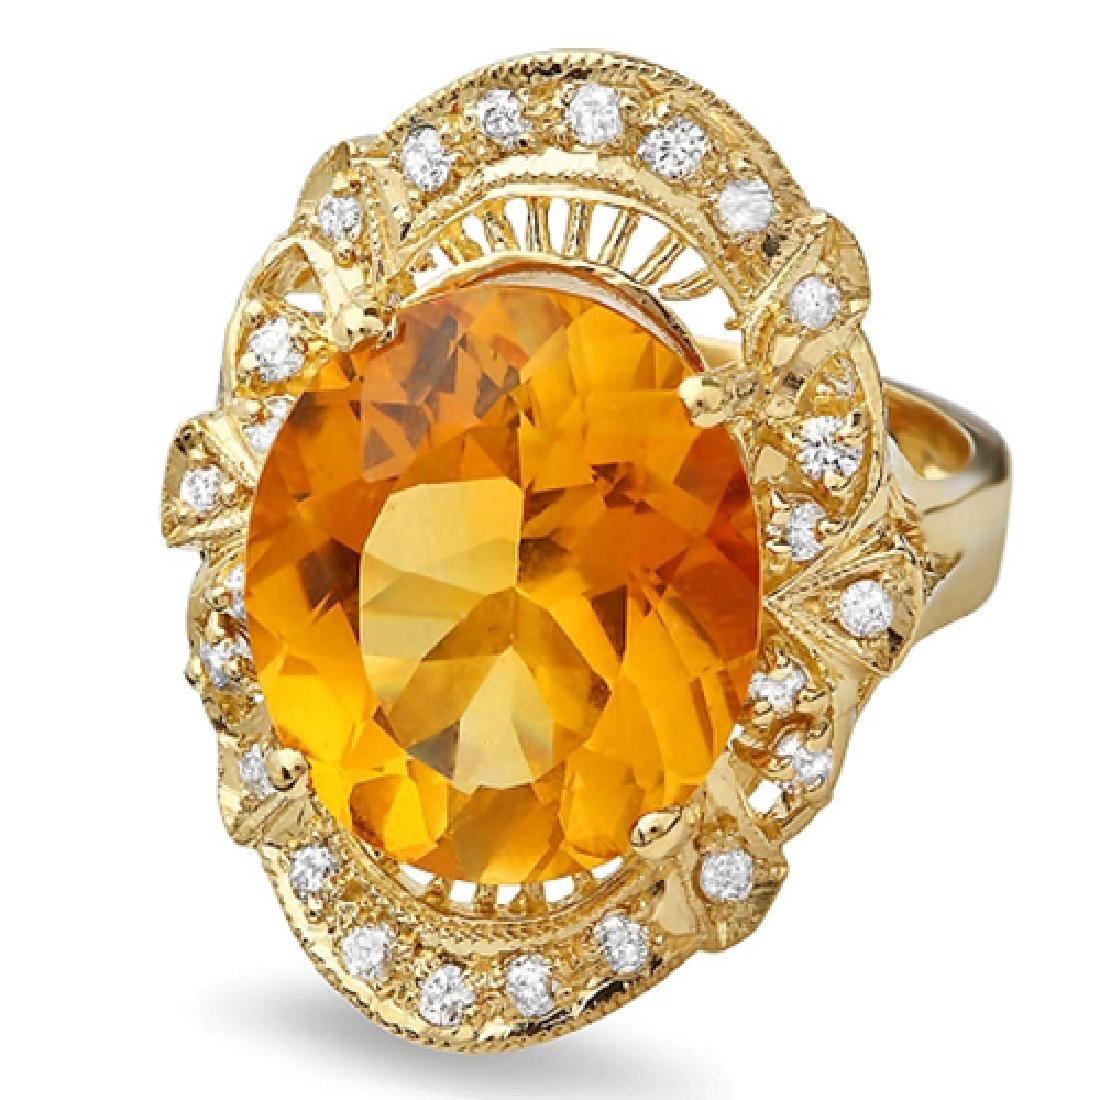 6.84 Carat Natural Citrine 18K Solid Yellow Gold